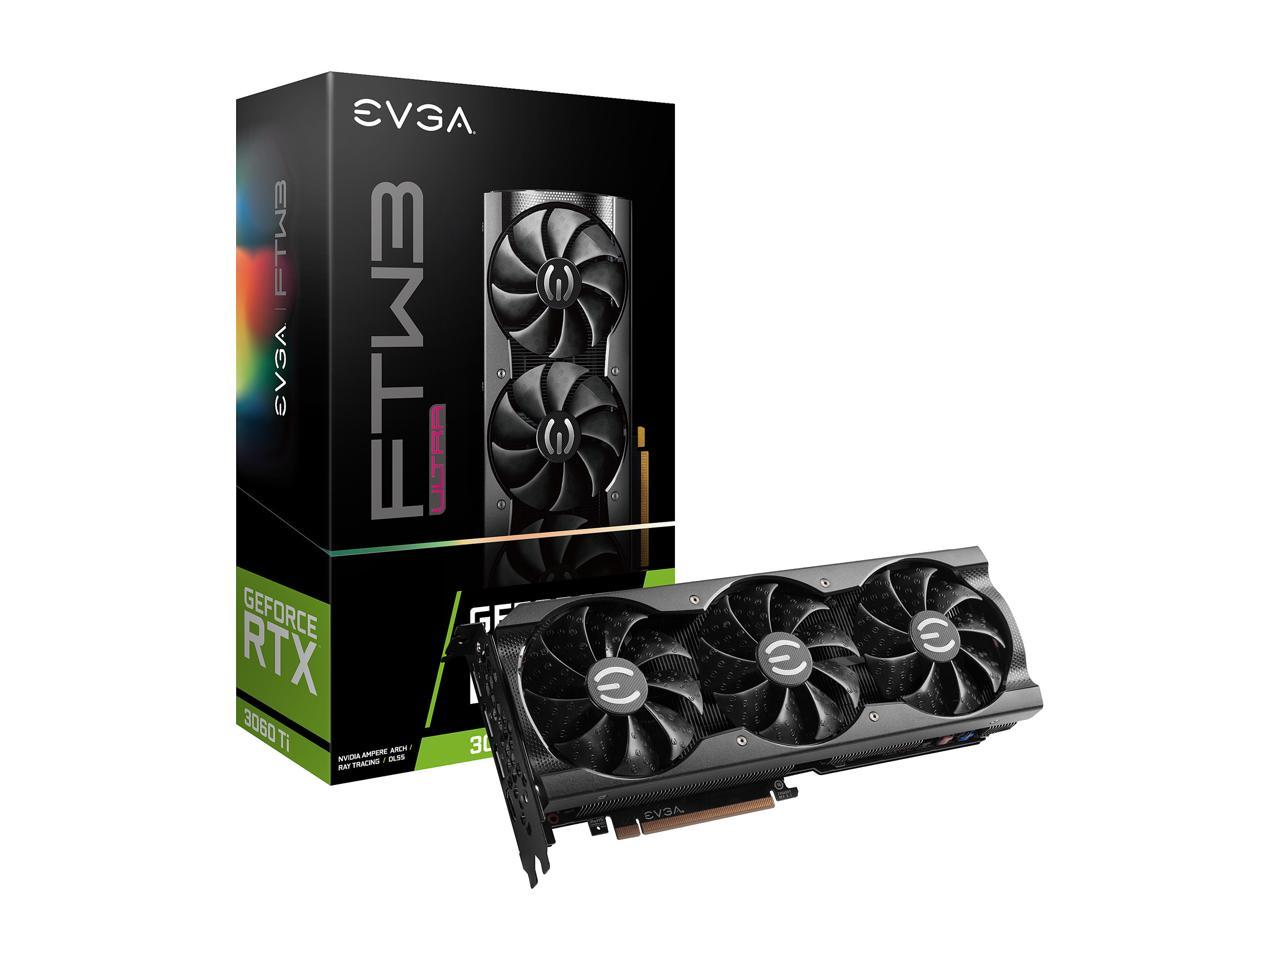 EVGA GeForce RTX 3060 Ti FTW ULTRA GAMING Video Card, 08G-P5-3667-KR, 8GB GDDR6, iCX3 Cooling, ARGB LED BACKORDER